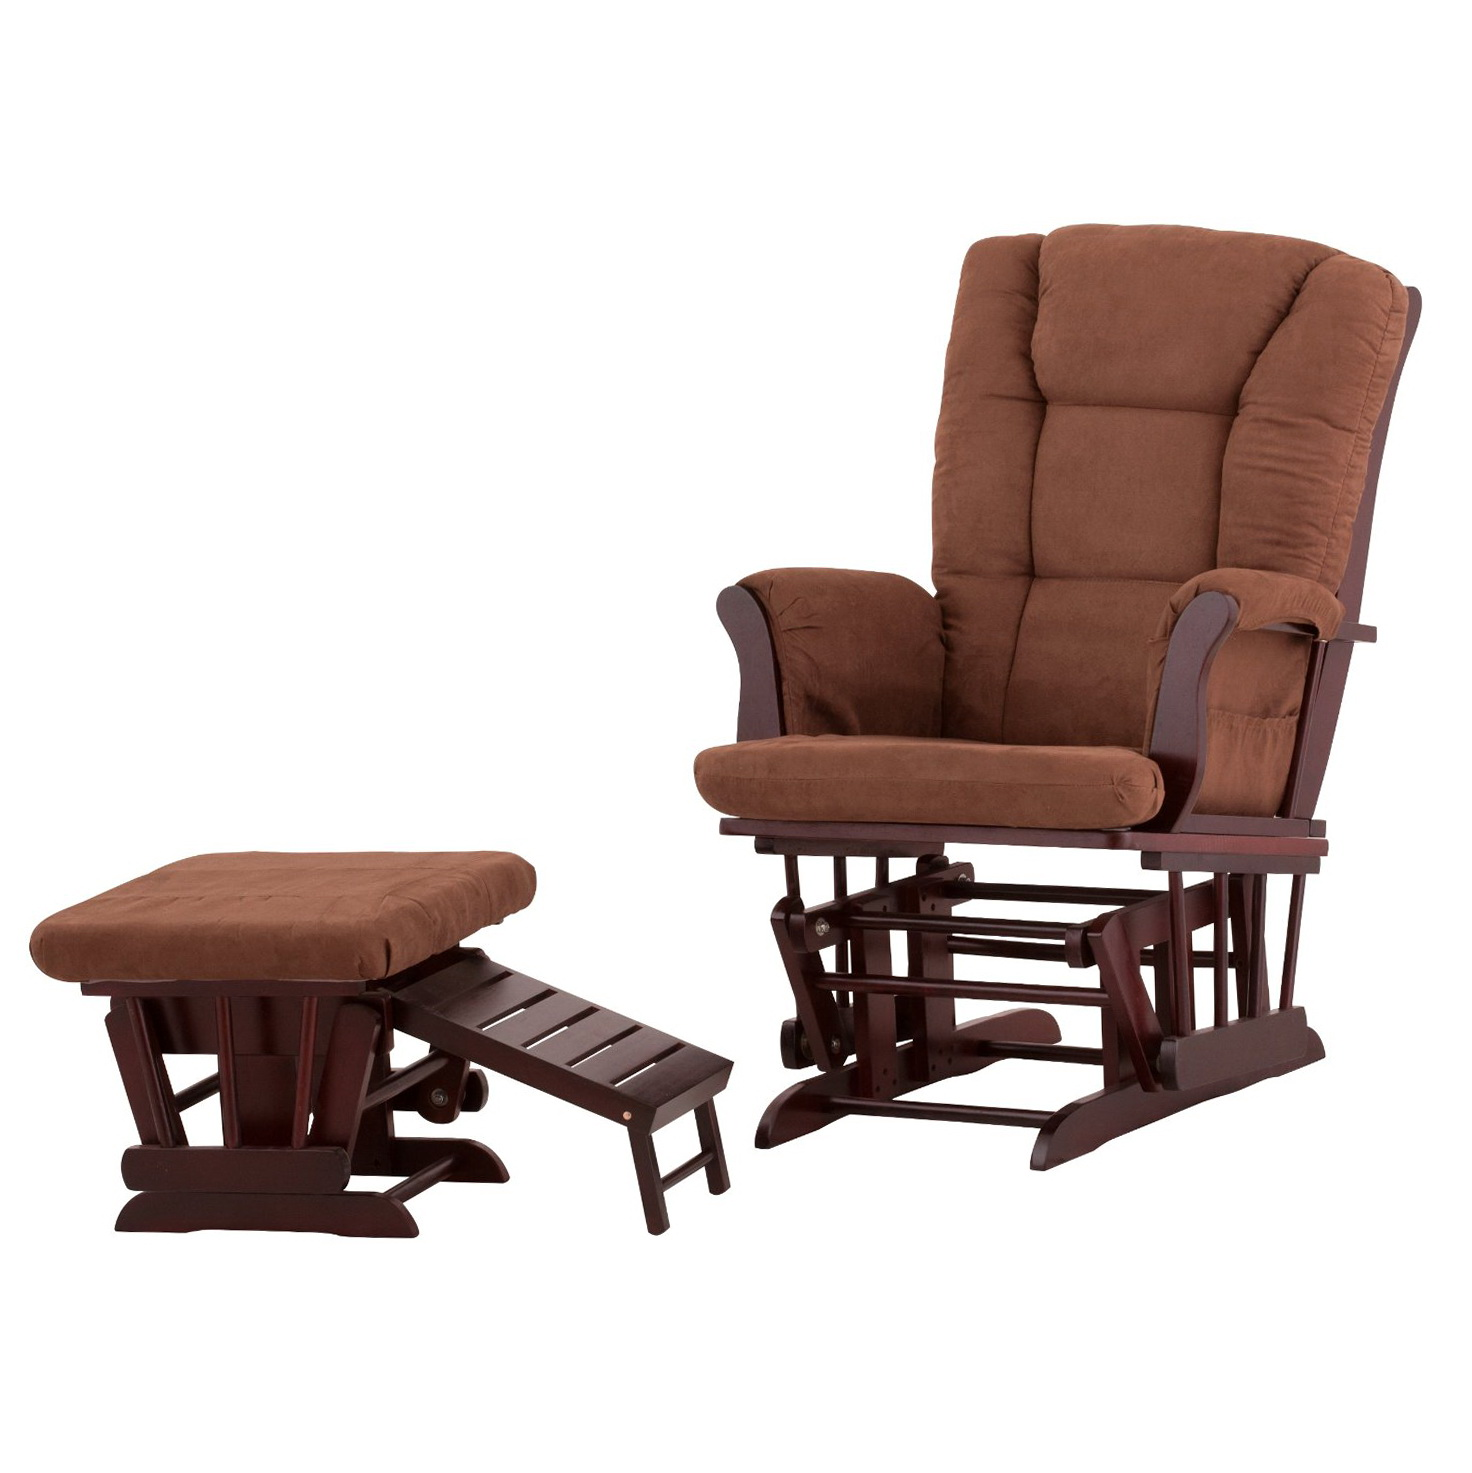 Replacement Cushions For Glider Rocker Walmart Home